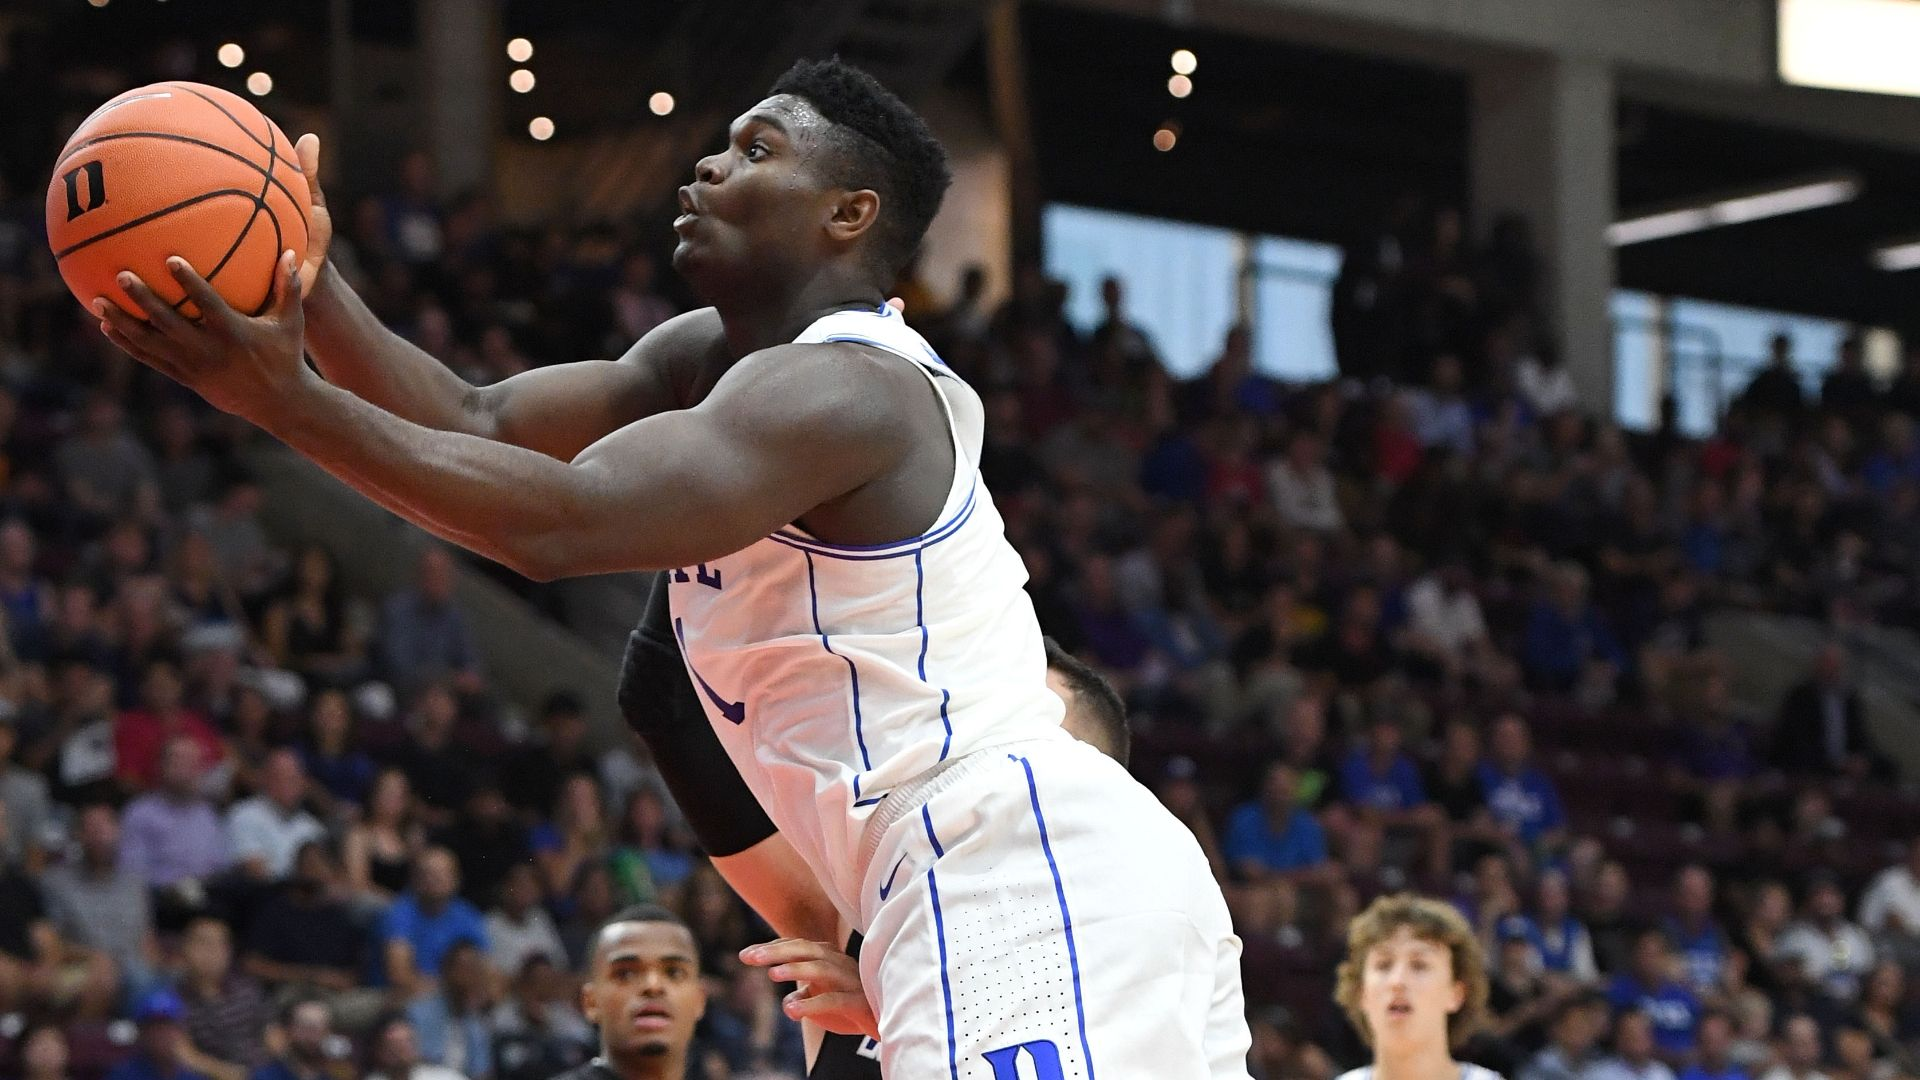 Zion impressive with 29 points in Duke debut